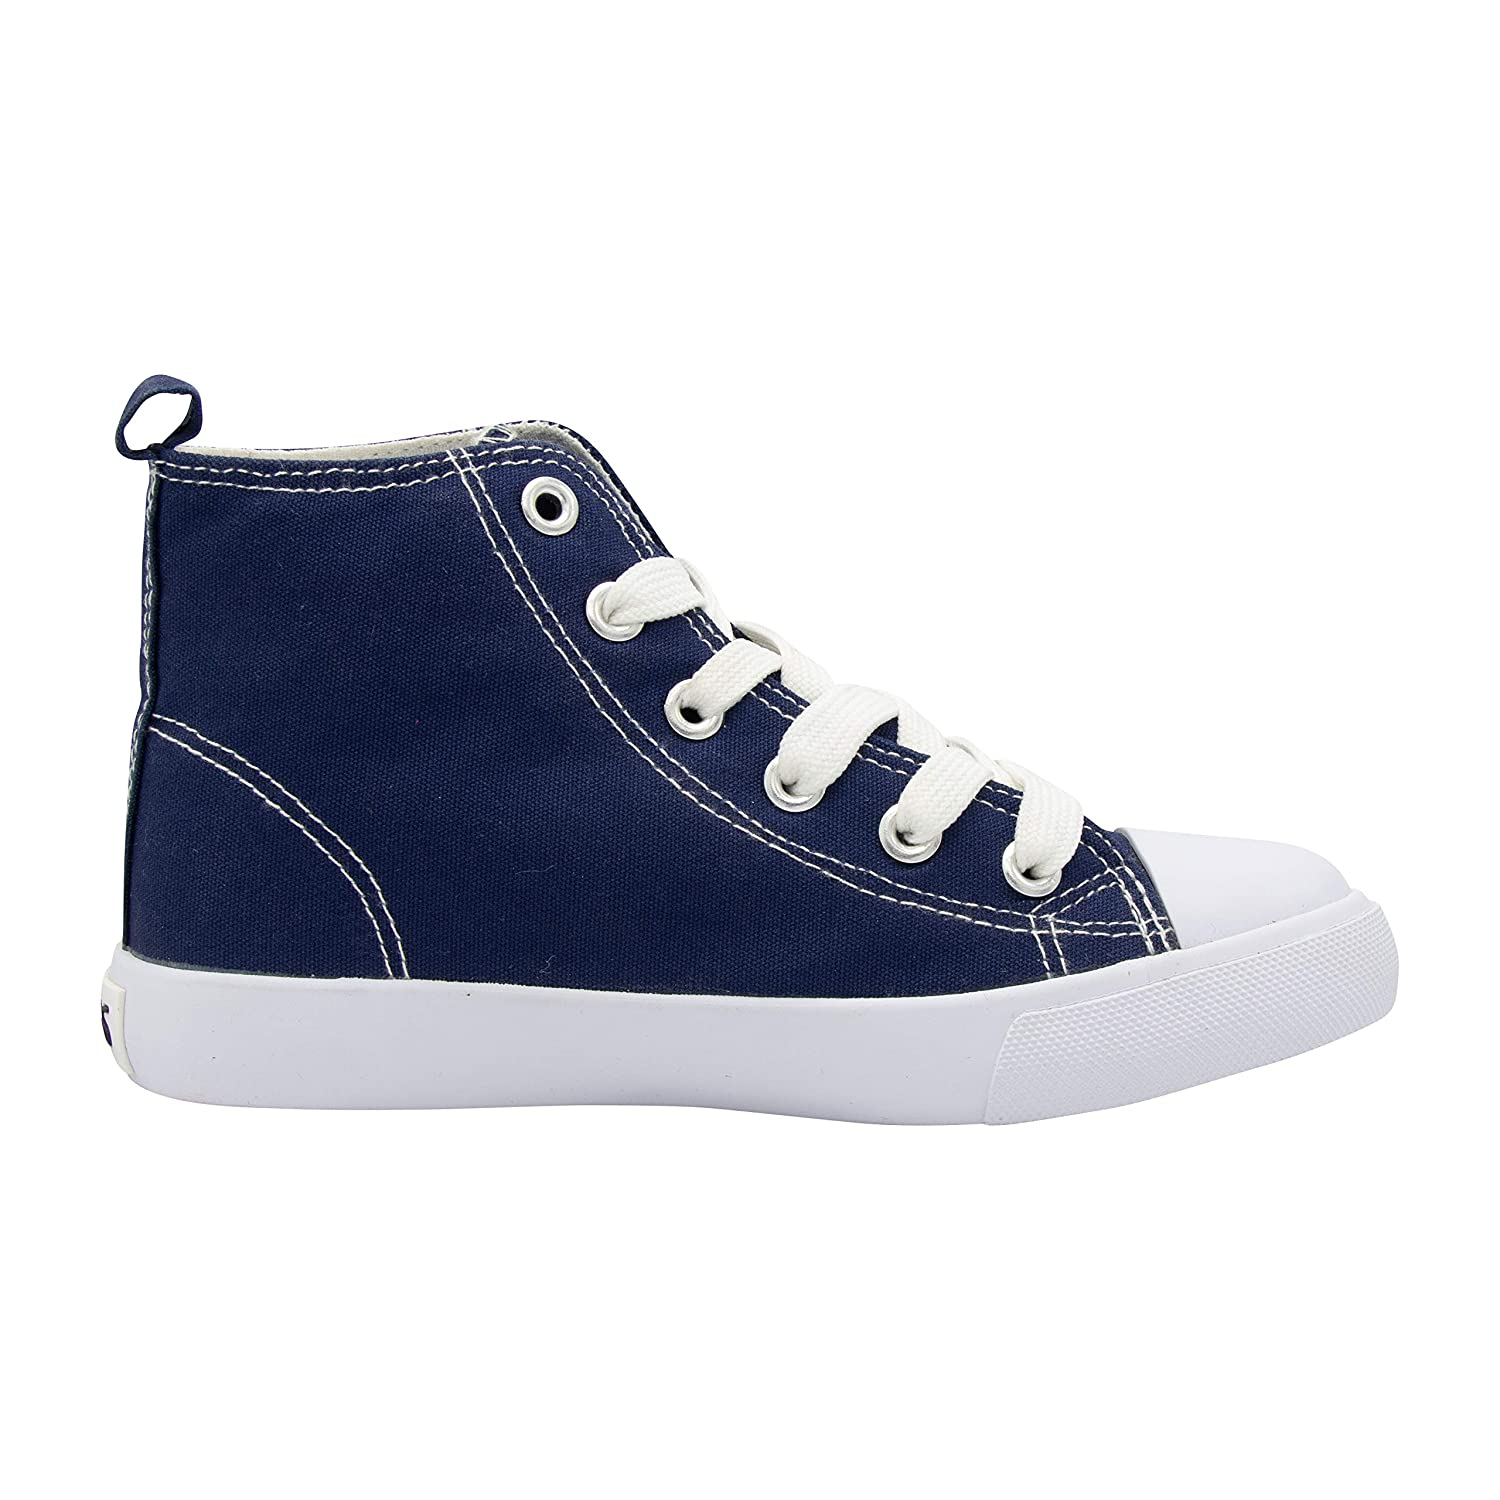 ZOOGS Fashion High-Top Canvas Sneakers Girls Boys Youth Toddlers /& Kids